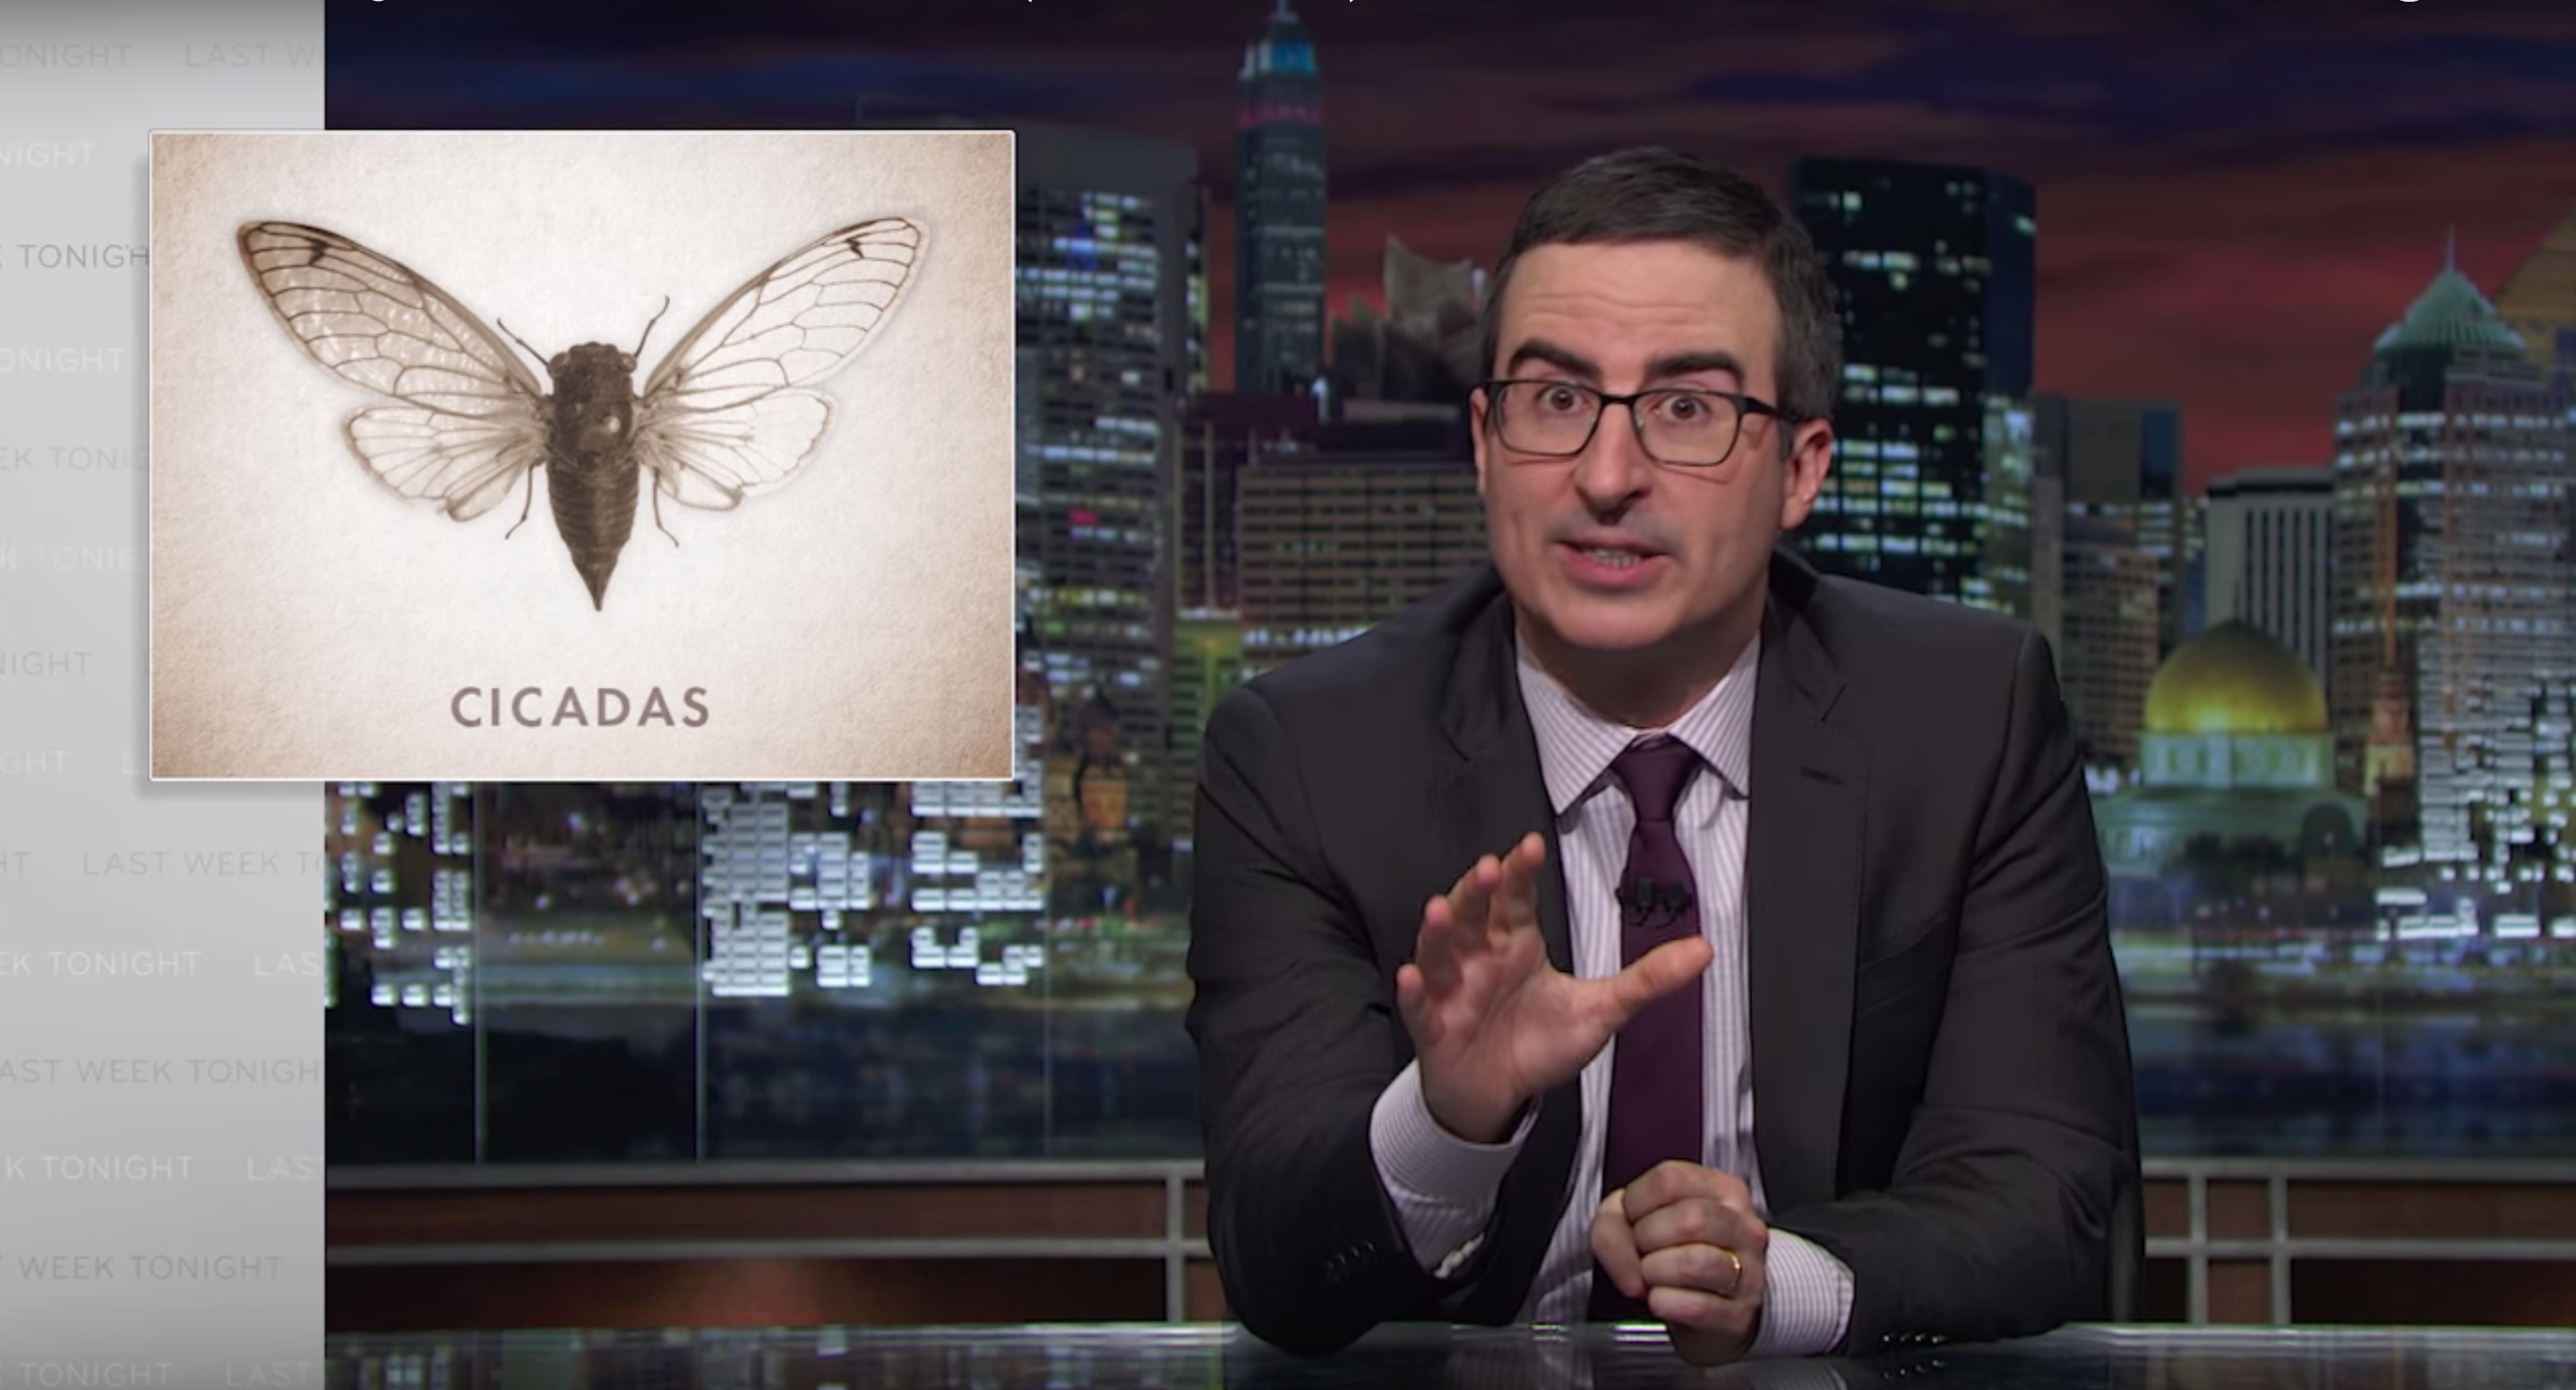 cicadas insects john-oliver last-week-tonight-with-john-oliver video